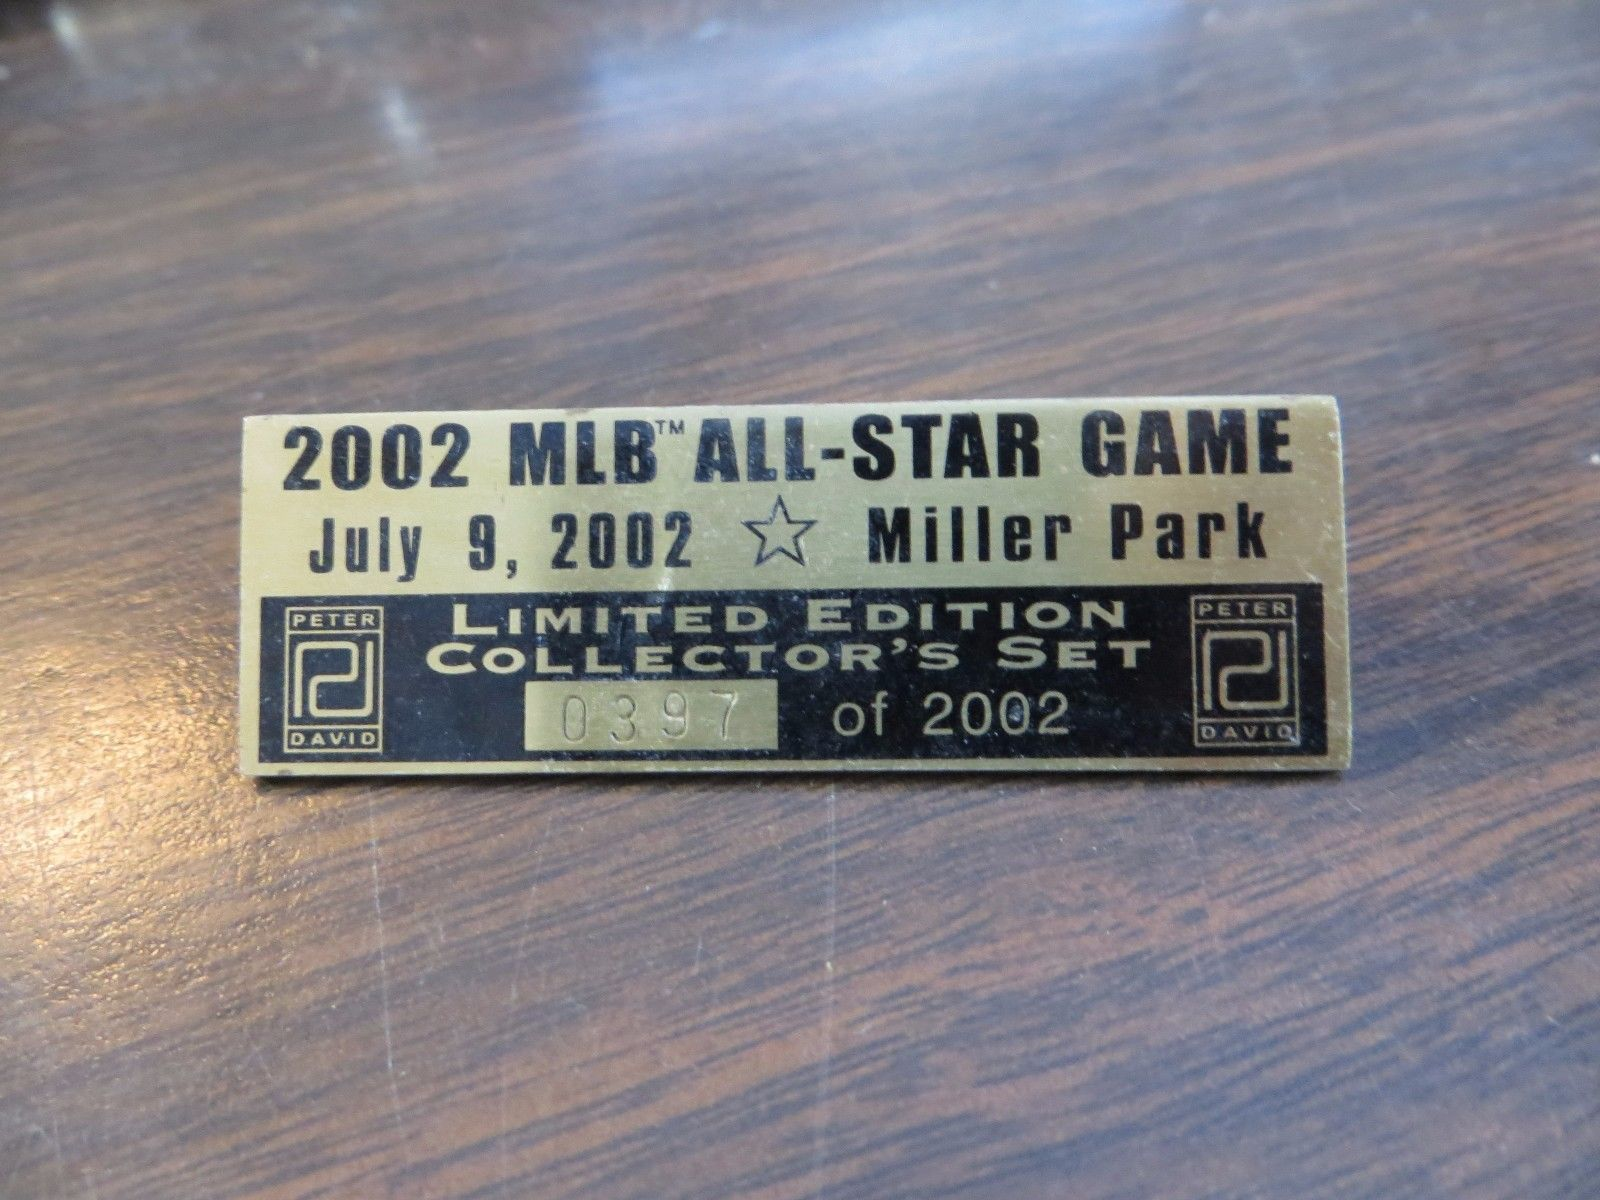 2002 MLB ALL STAR GAME,MILLER PARK,LIMITED EDITION  collecter 0397 souvenir pin